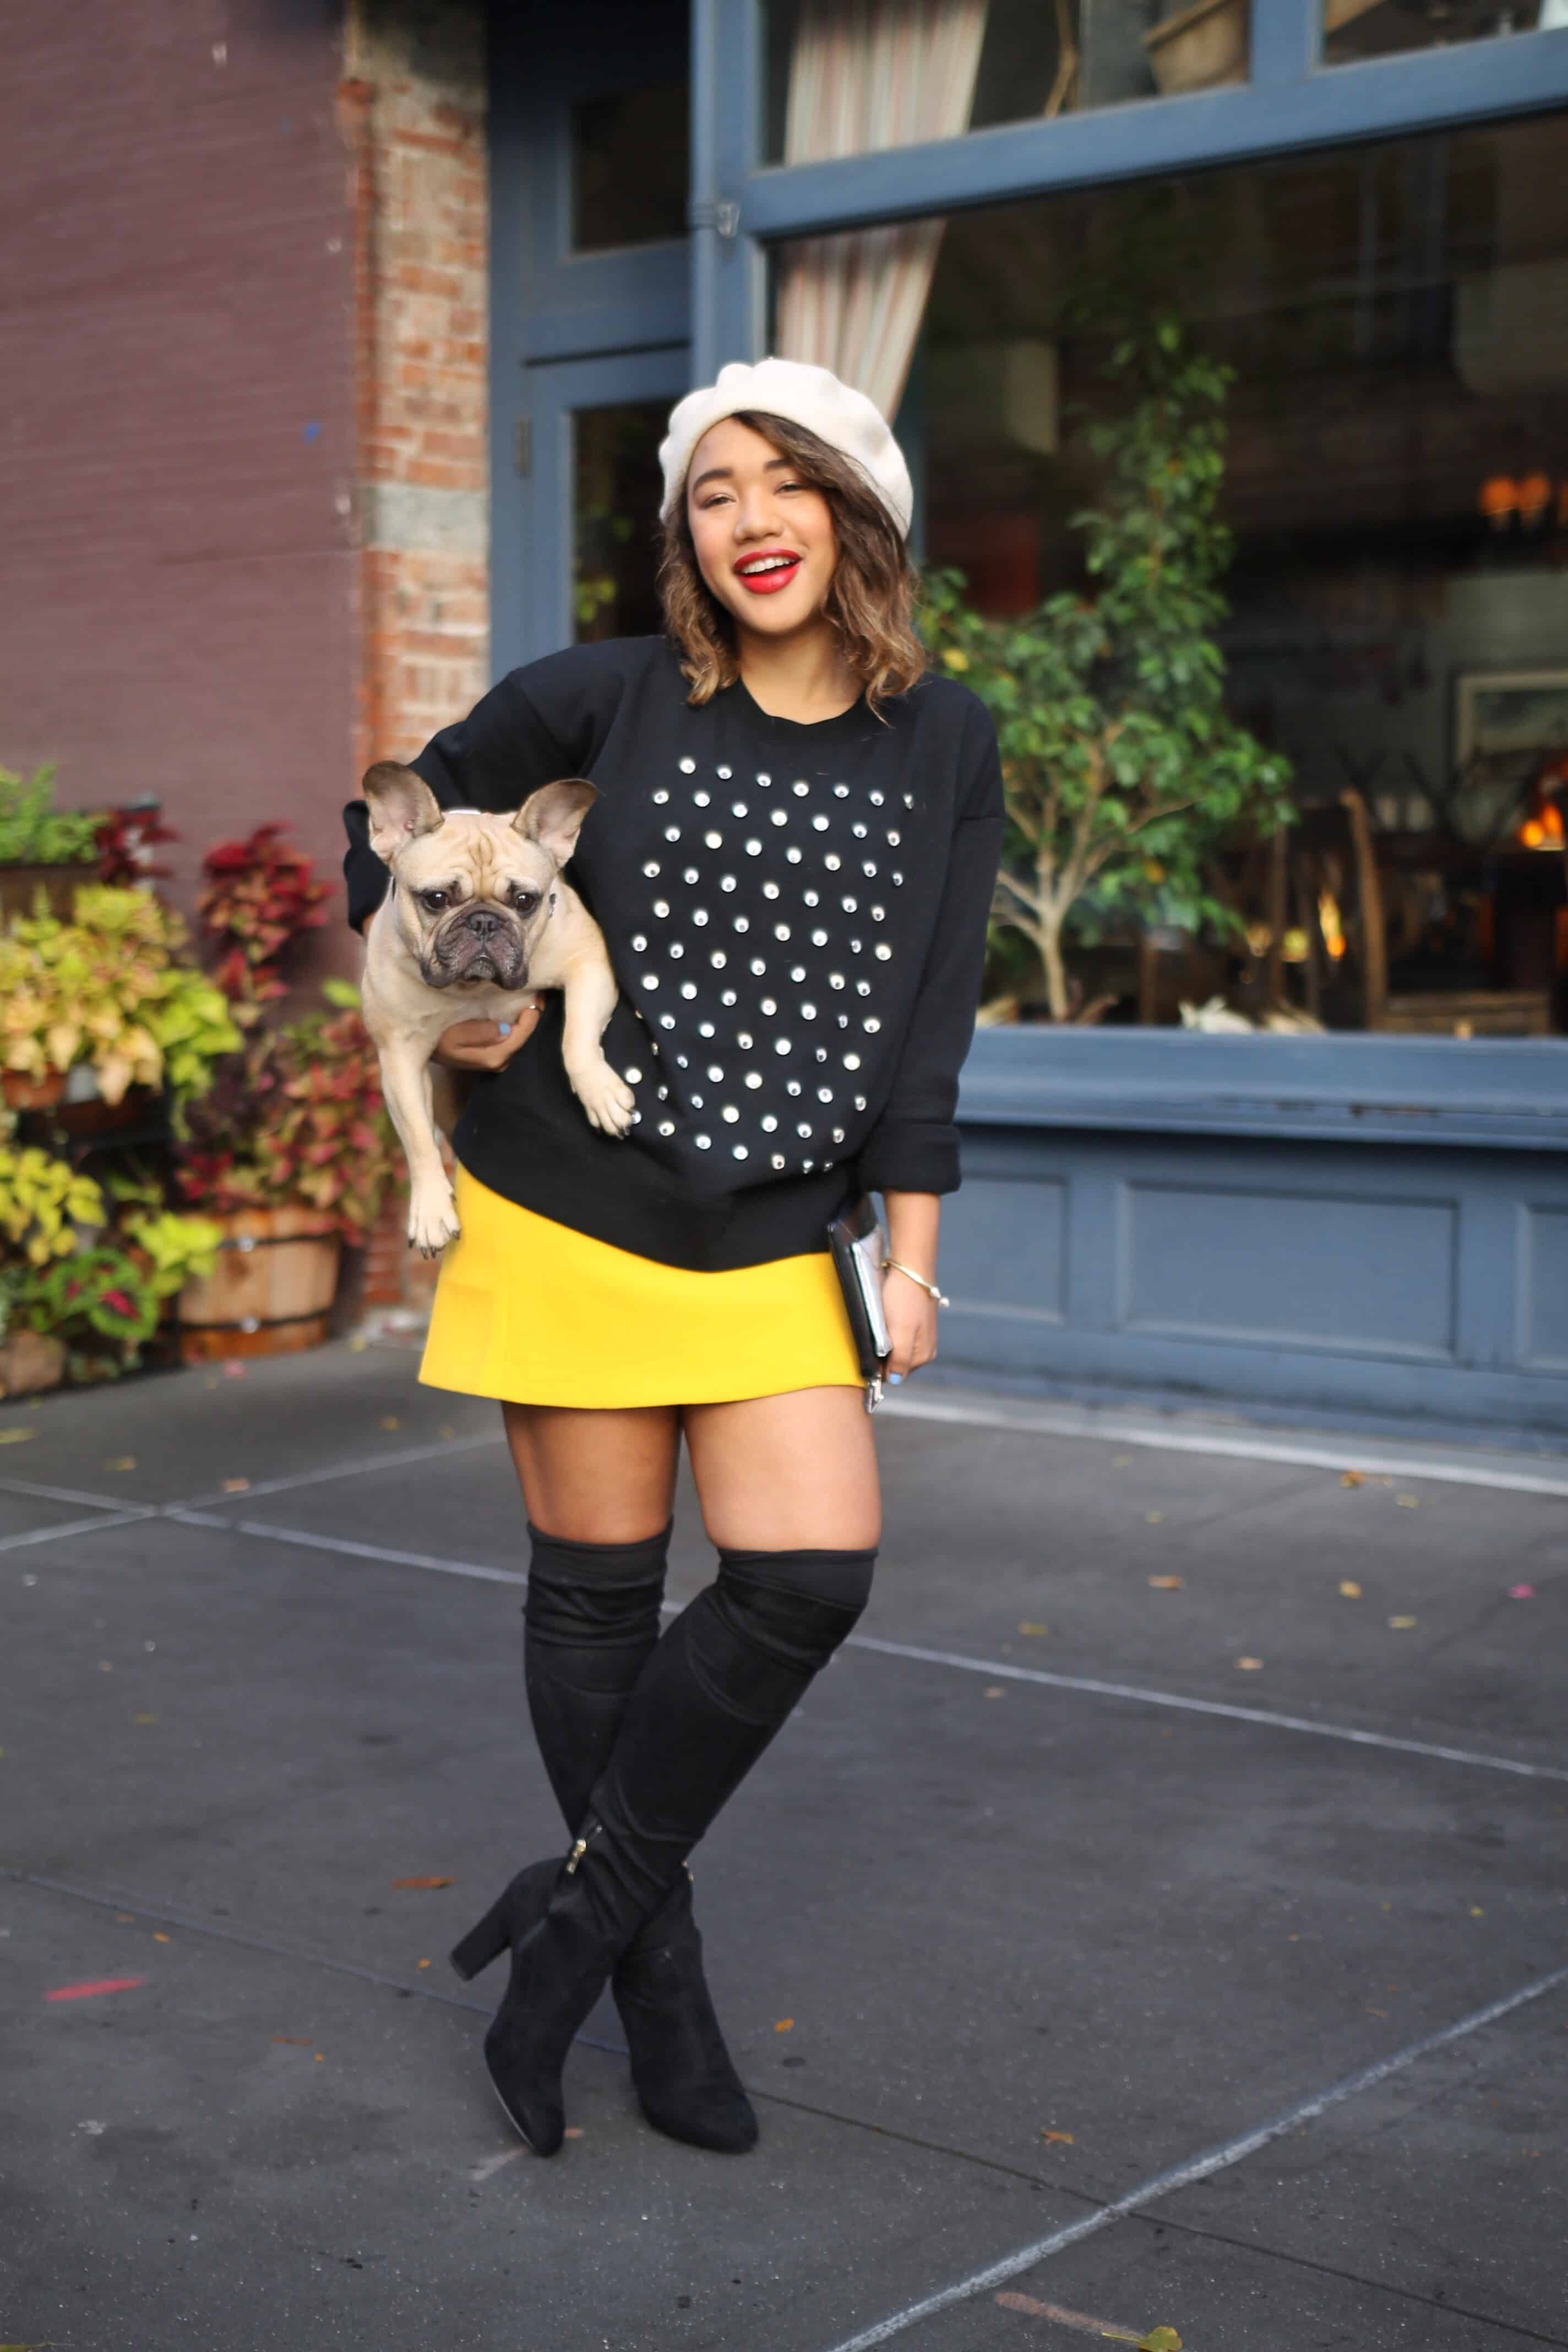 62a06582f0267 15 Fall Outfit Ideas For All Of The Season s Festivities